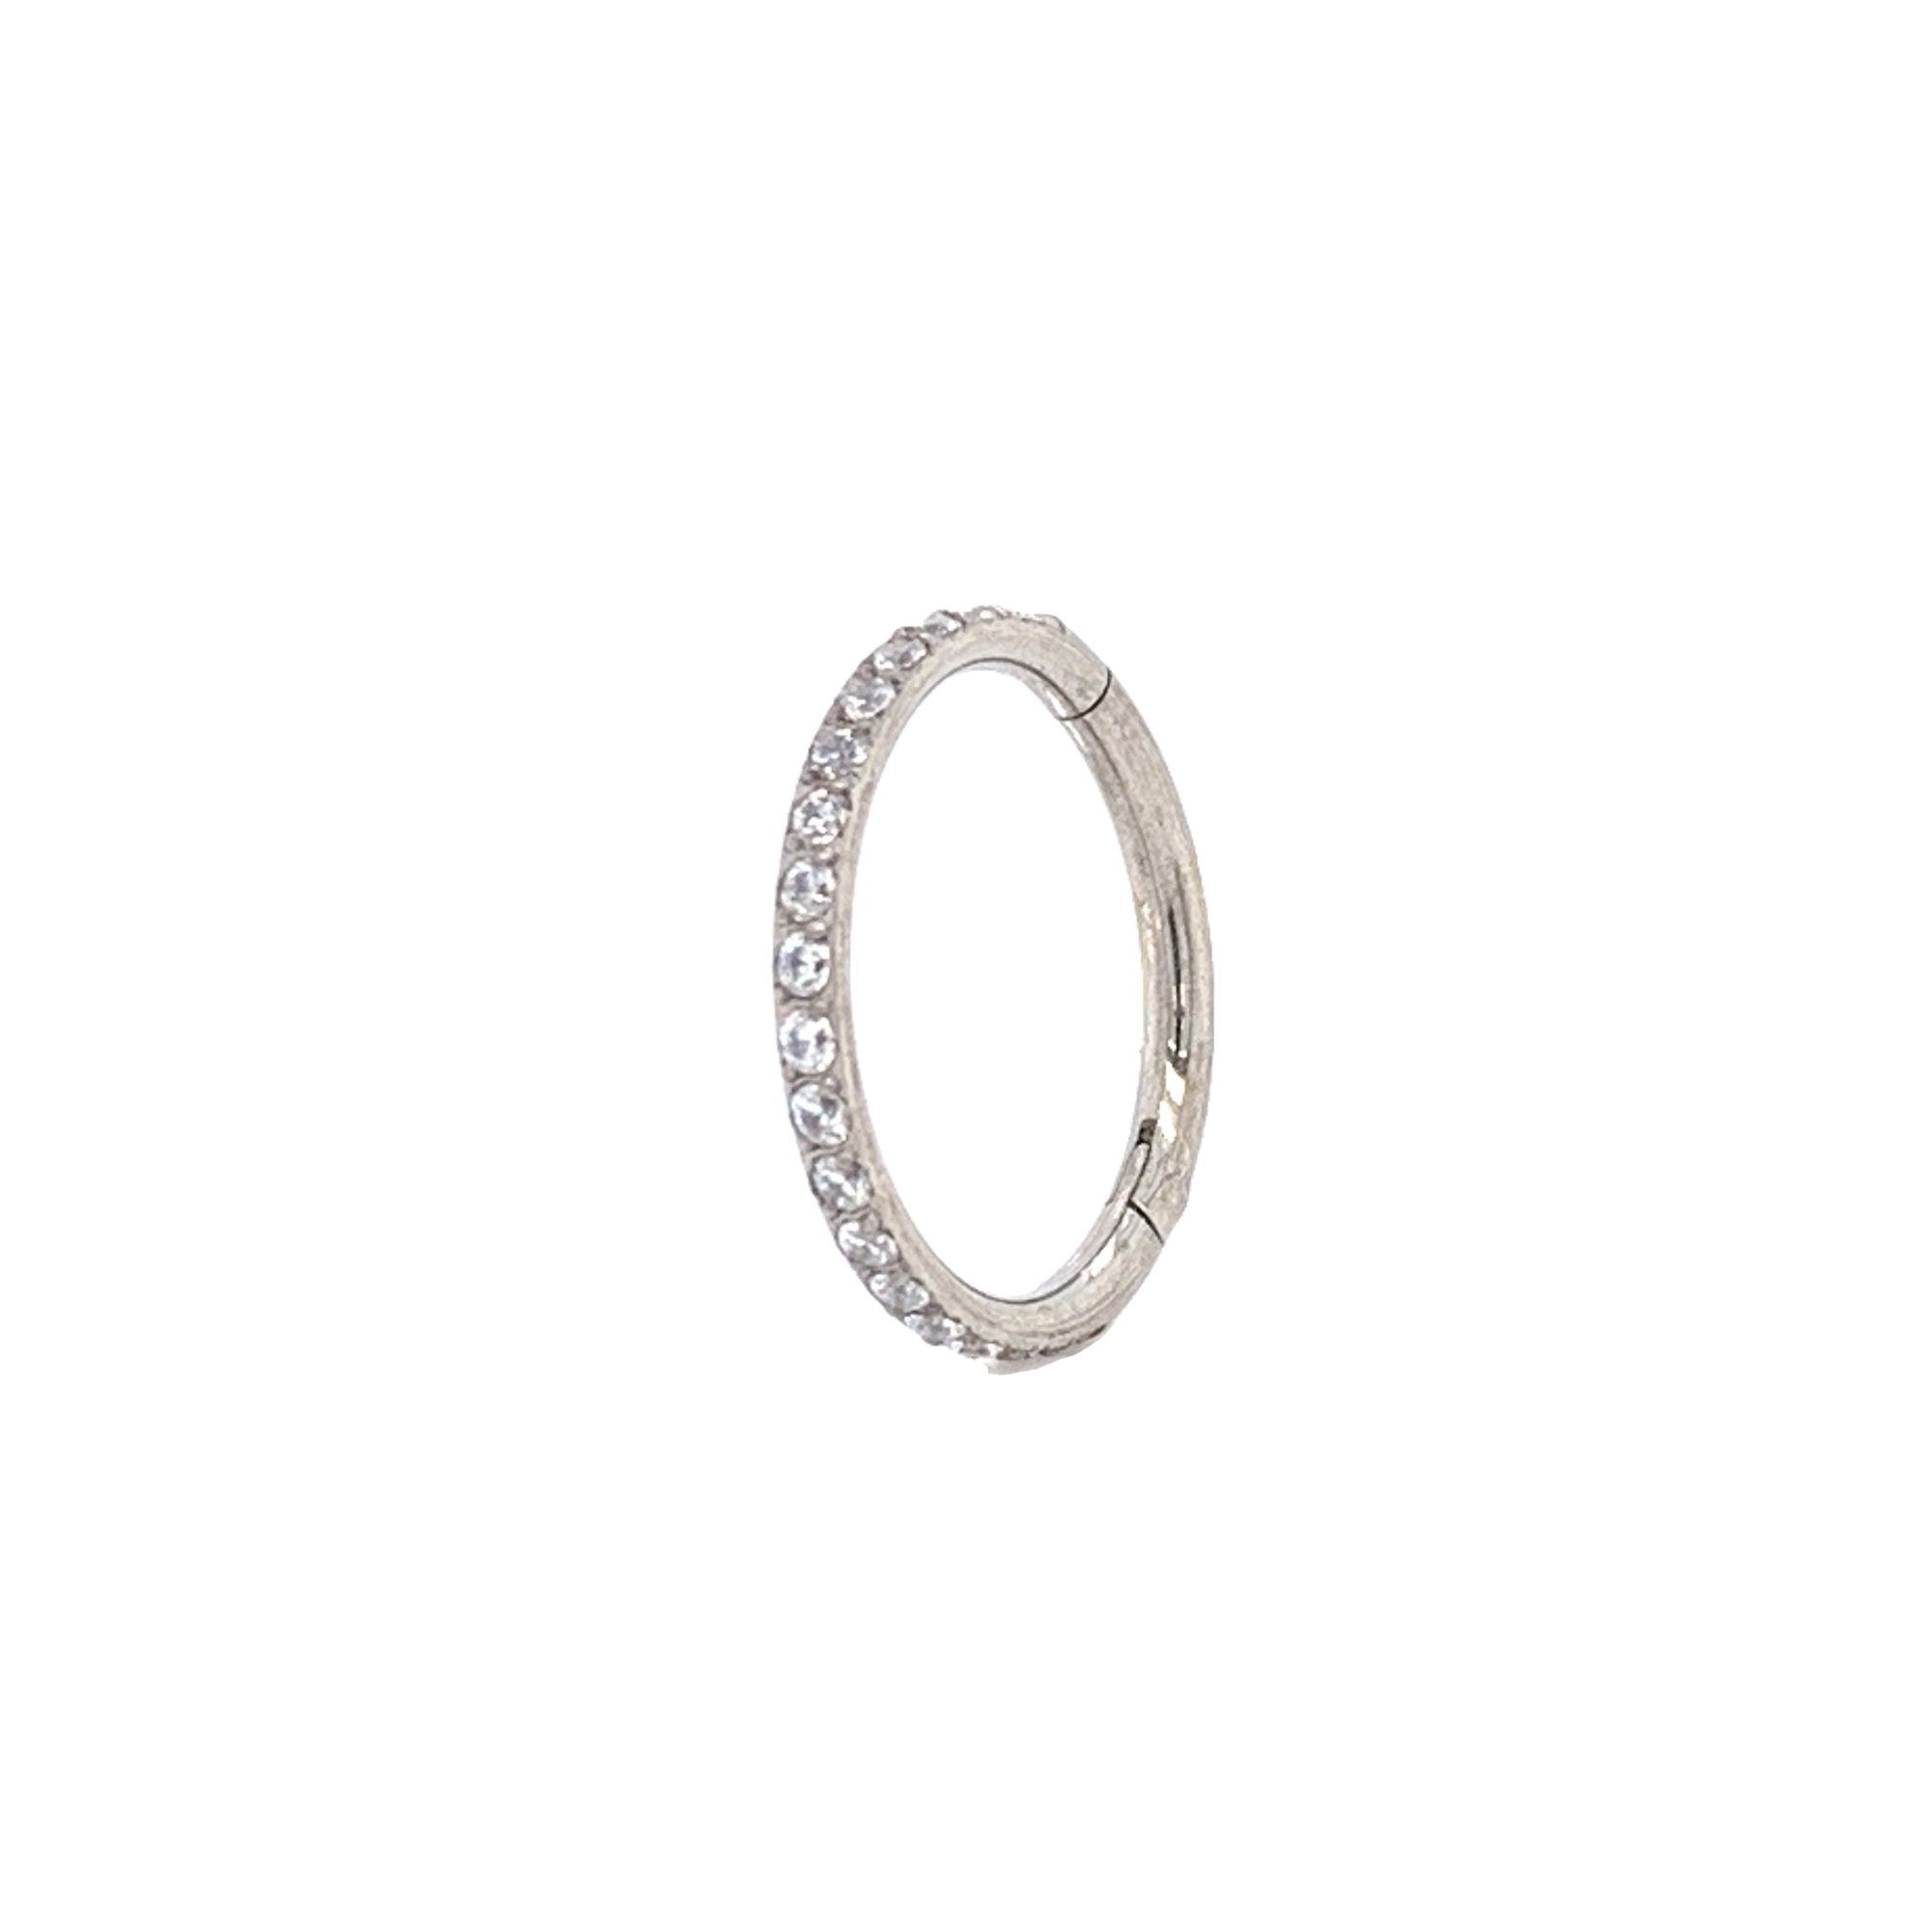 Eternity Pave Set Cz Segment Ring Hinged Ring